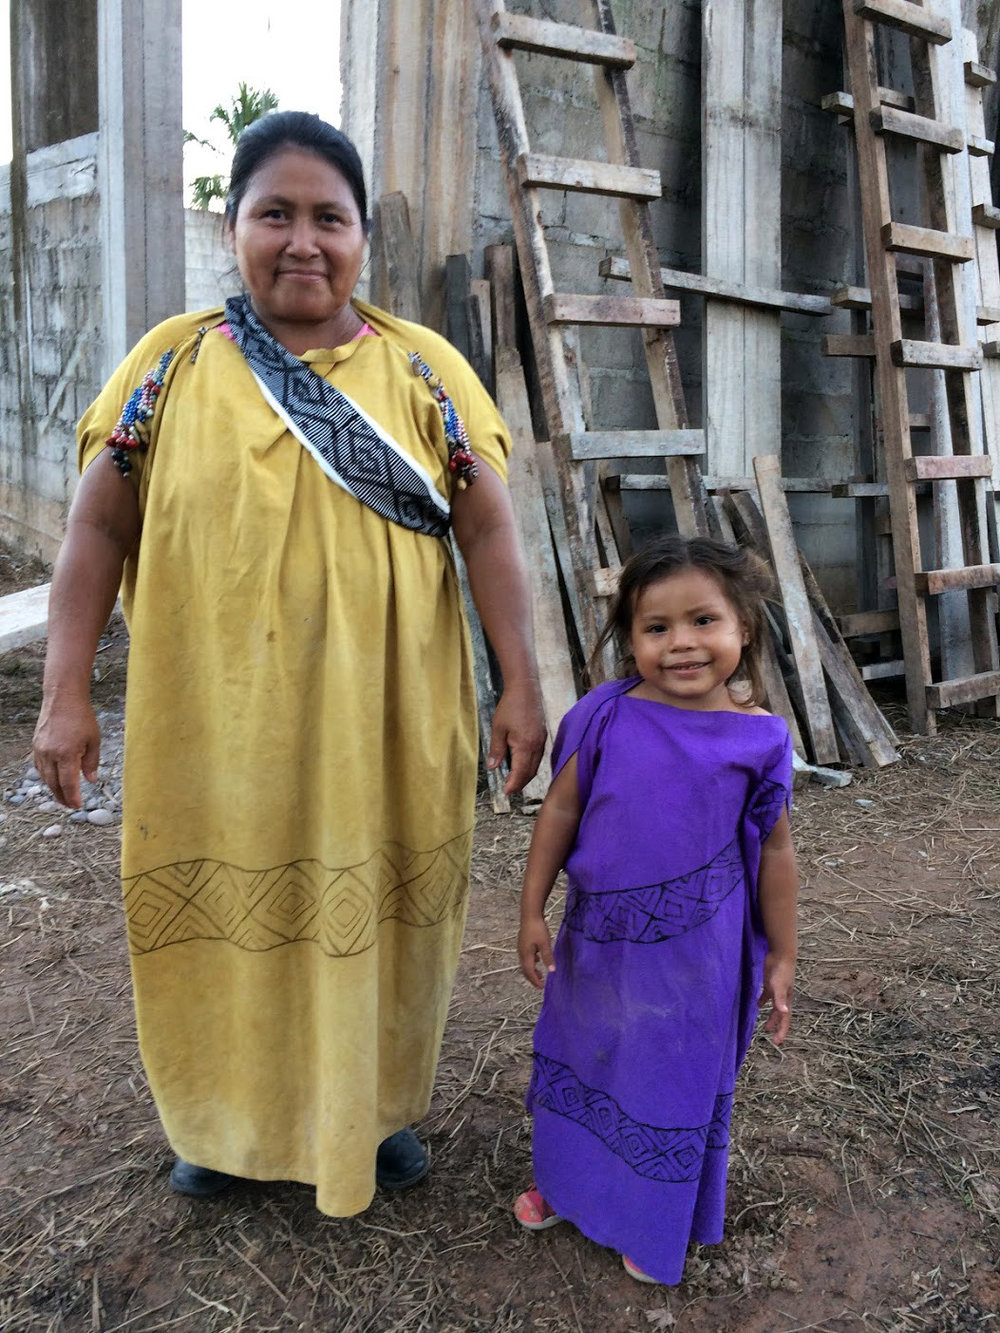 Villa America Centro Yanesha Woman and Child Junín, Perú (Lily Garcia, NEBC 2017 Team Member)